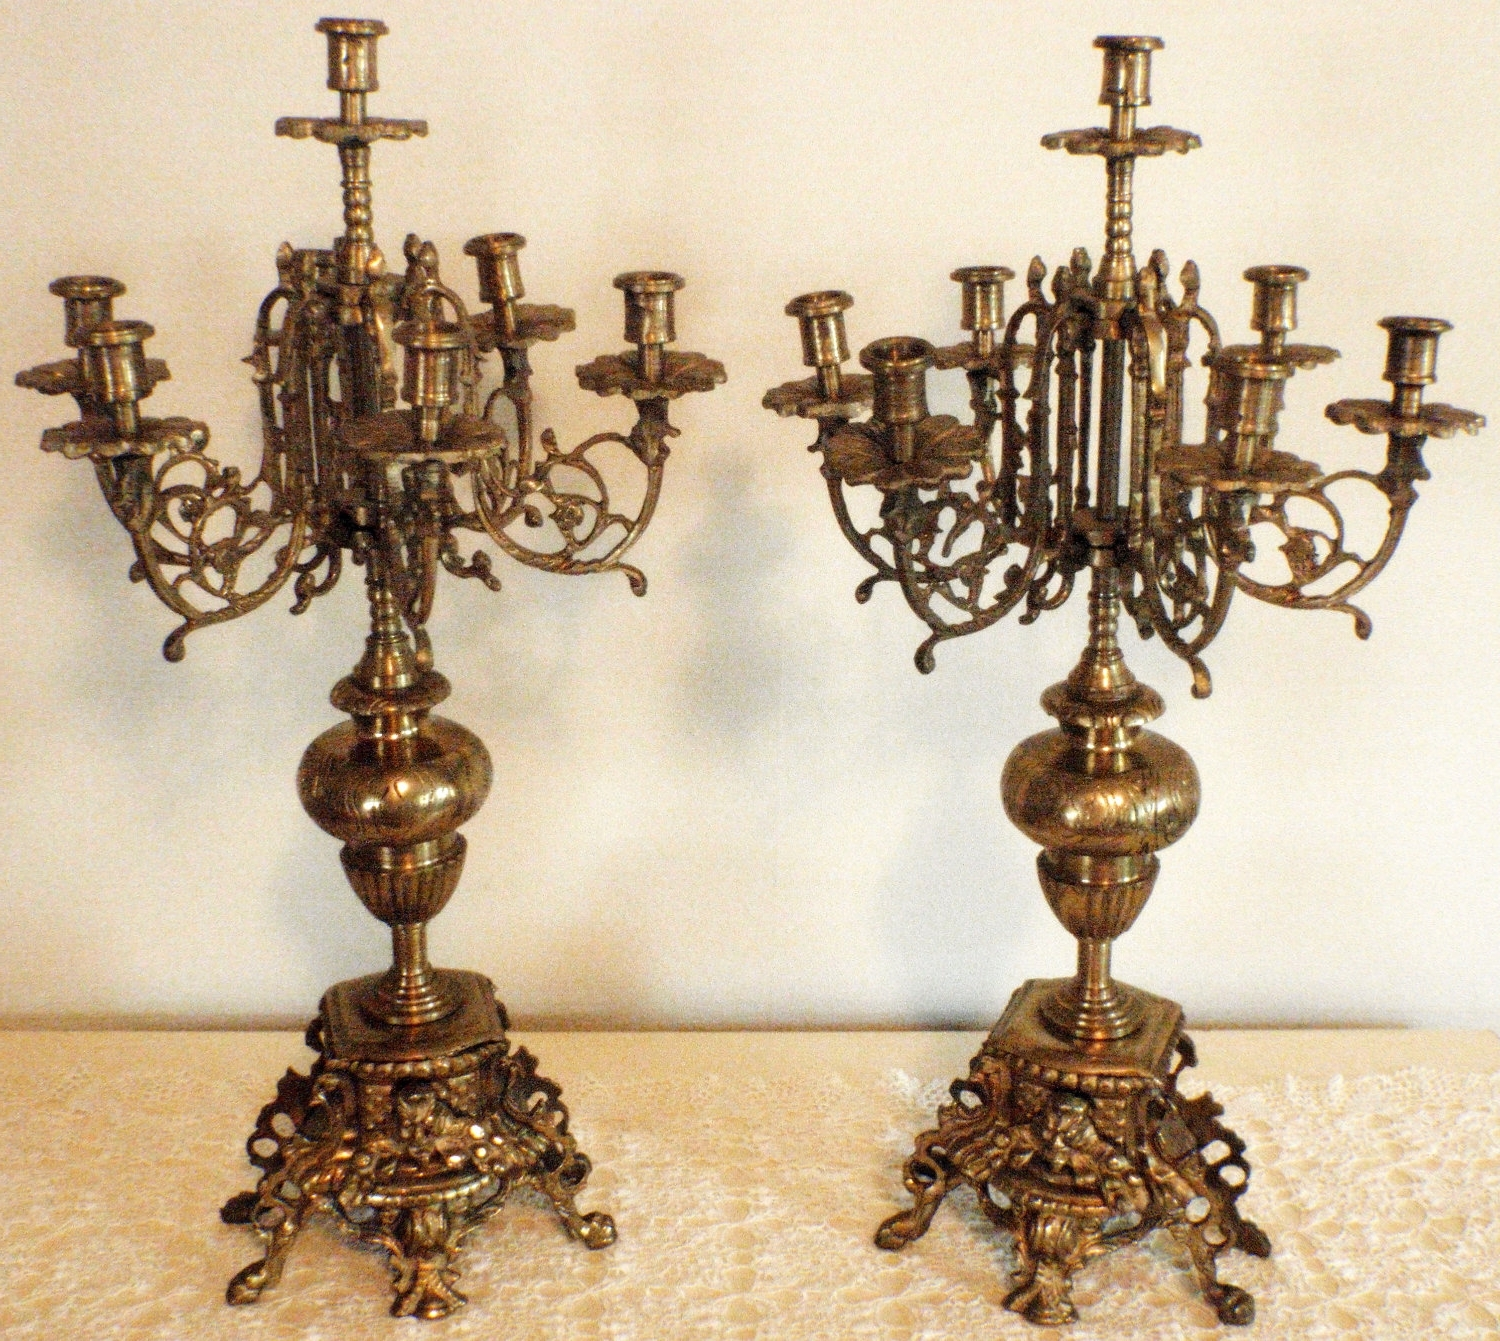 Candelabra And Chandelier With Popular Ornate Chandeliers (View 2 of 20)